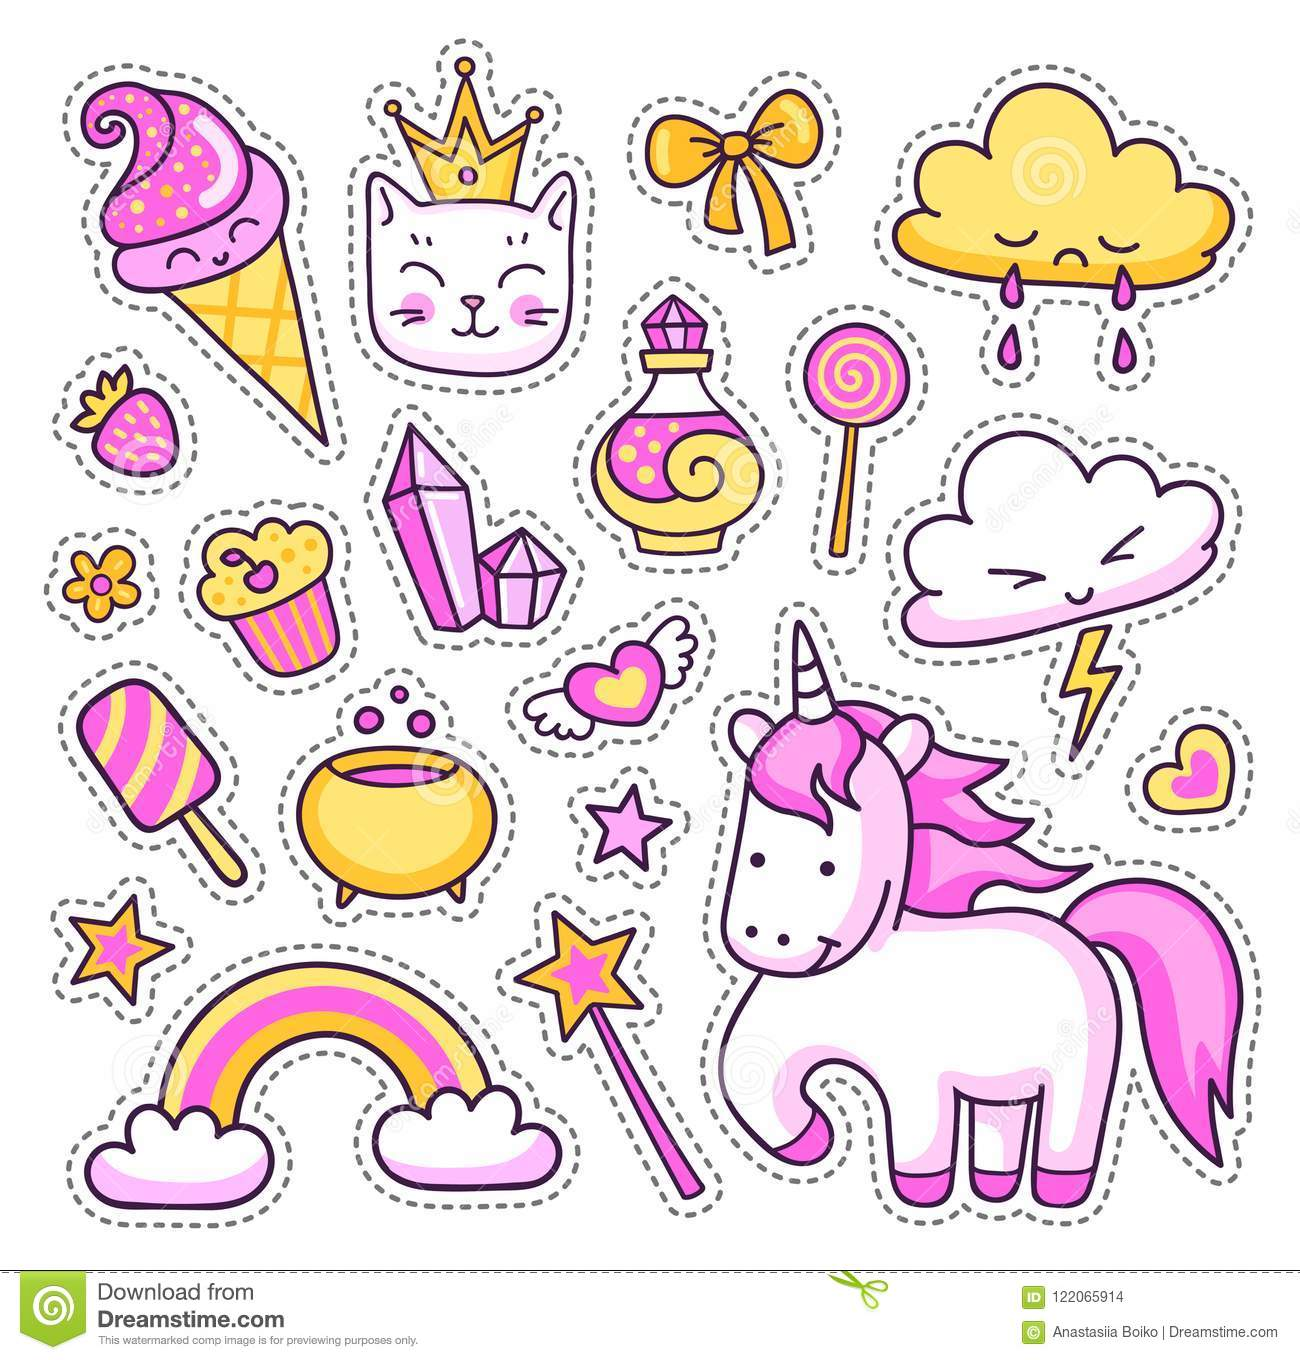 Background Of Cute Ice Cream With Phrase Vector: Set Of Cute Cartoon Stickers, Patches, Badges, Pins